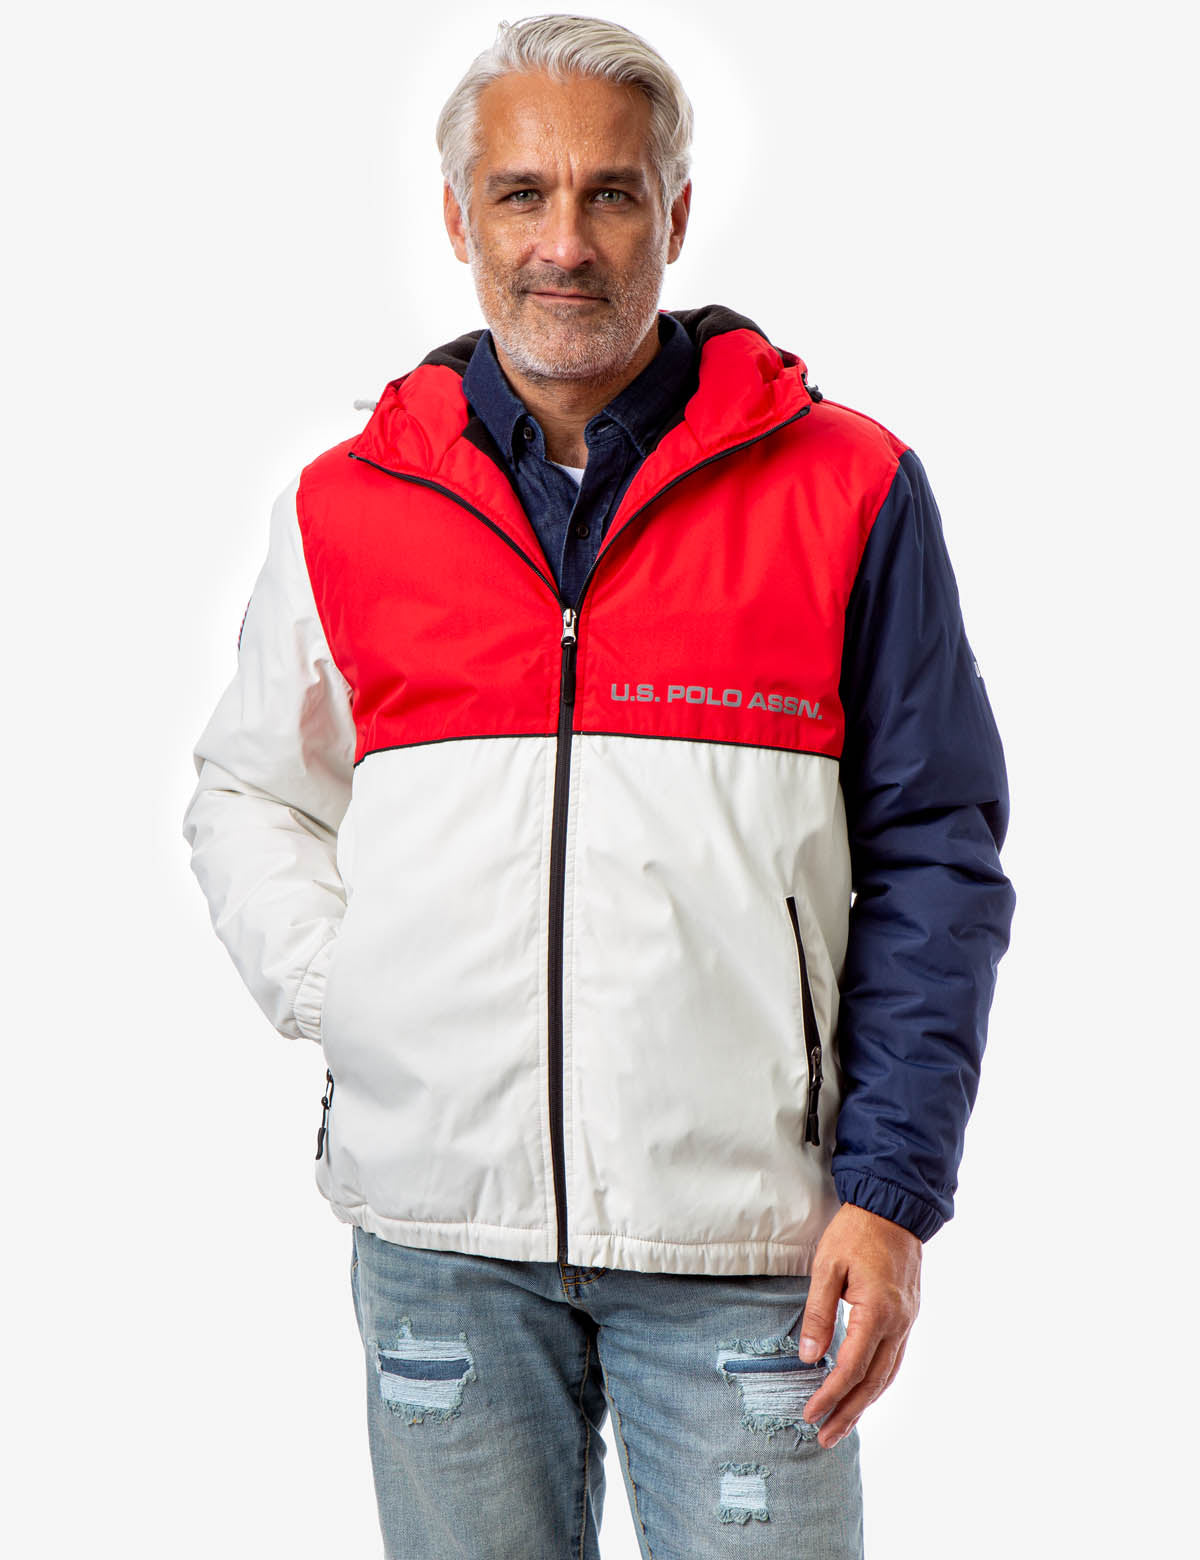 COLORBLOCK AMERICANA WINDBREAKER - U.S. Polo Assn.